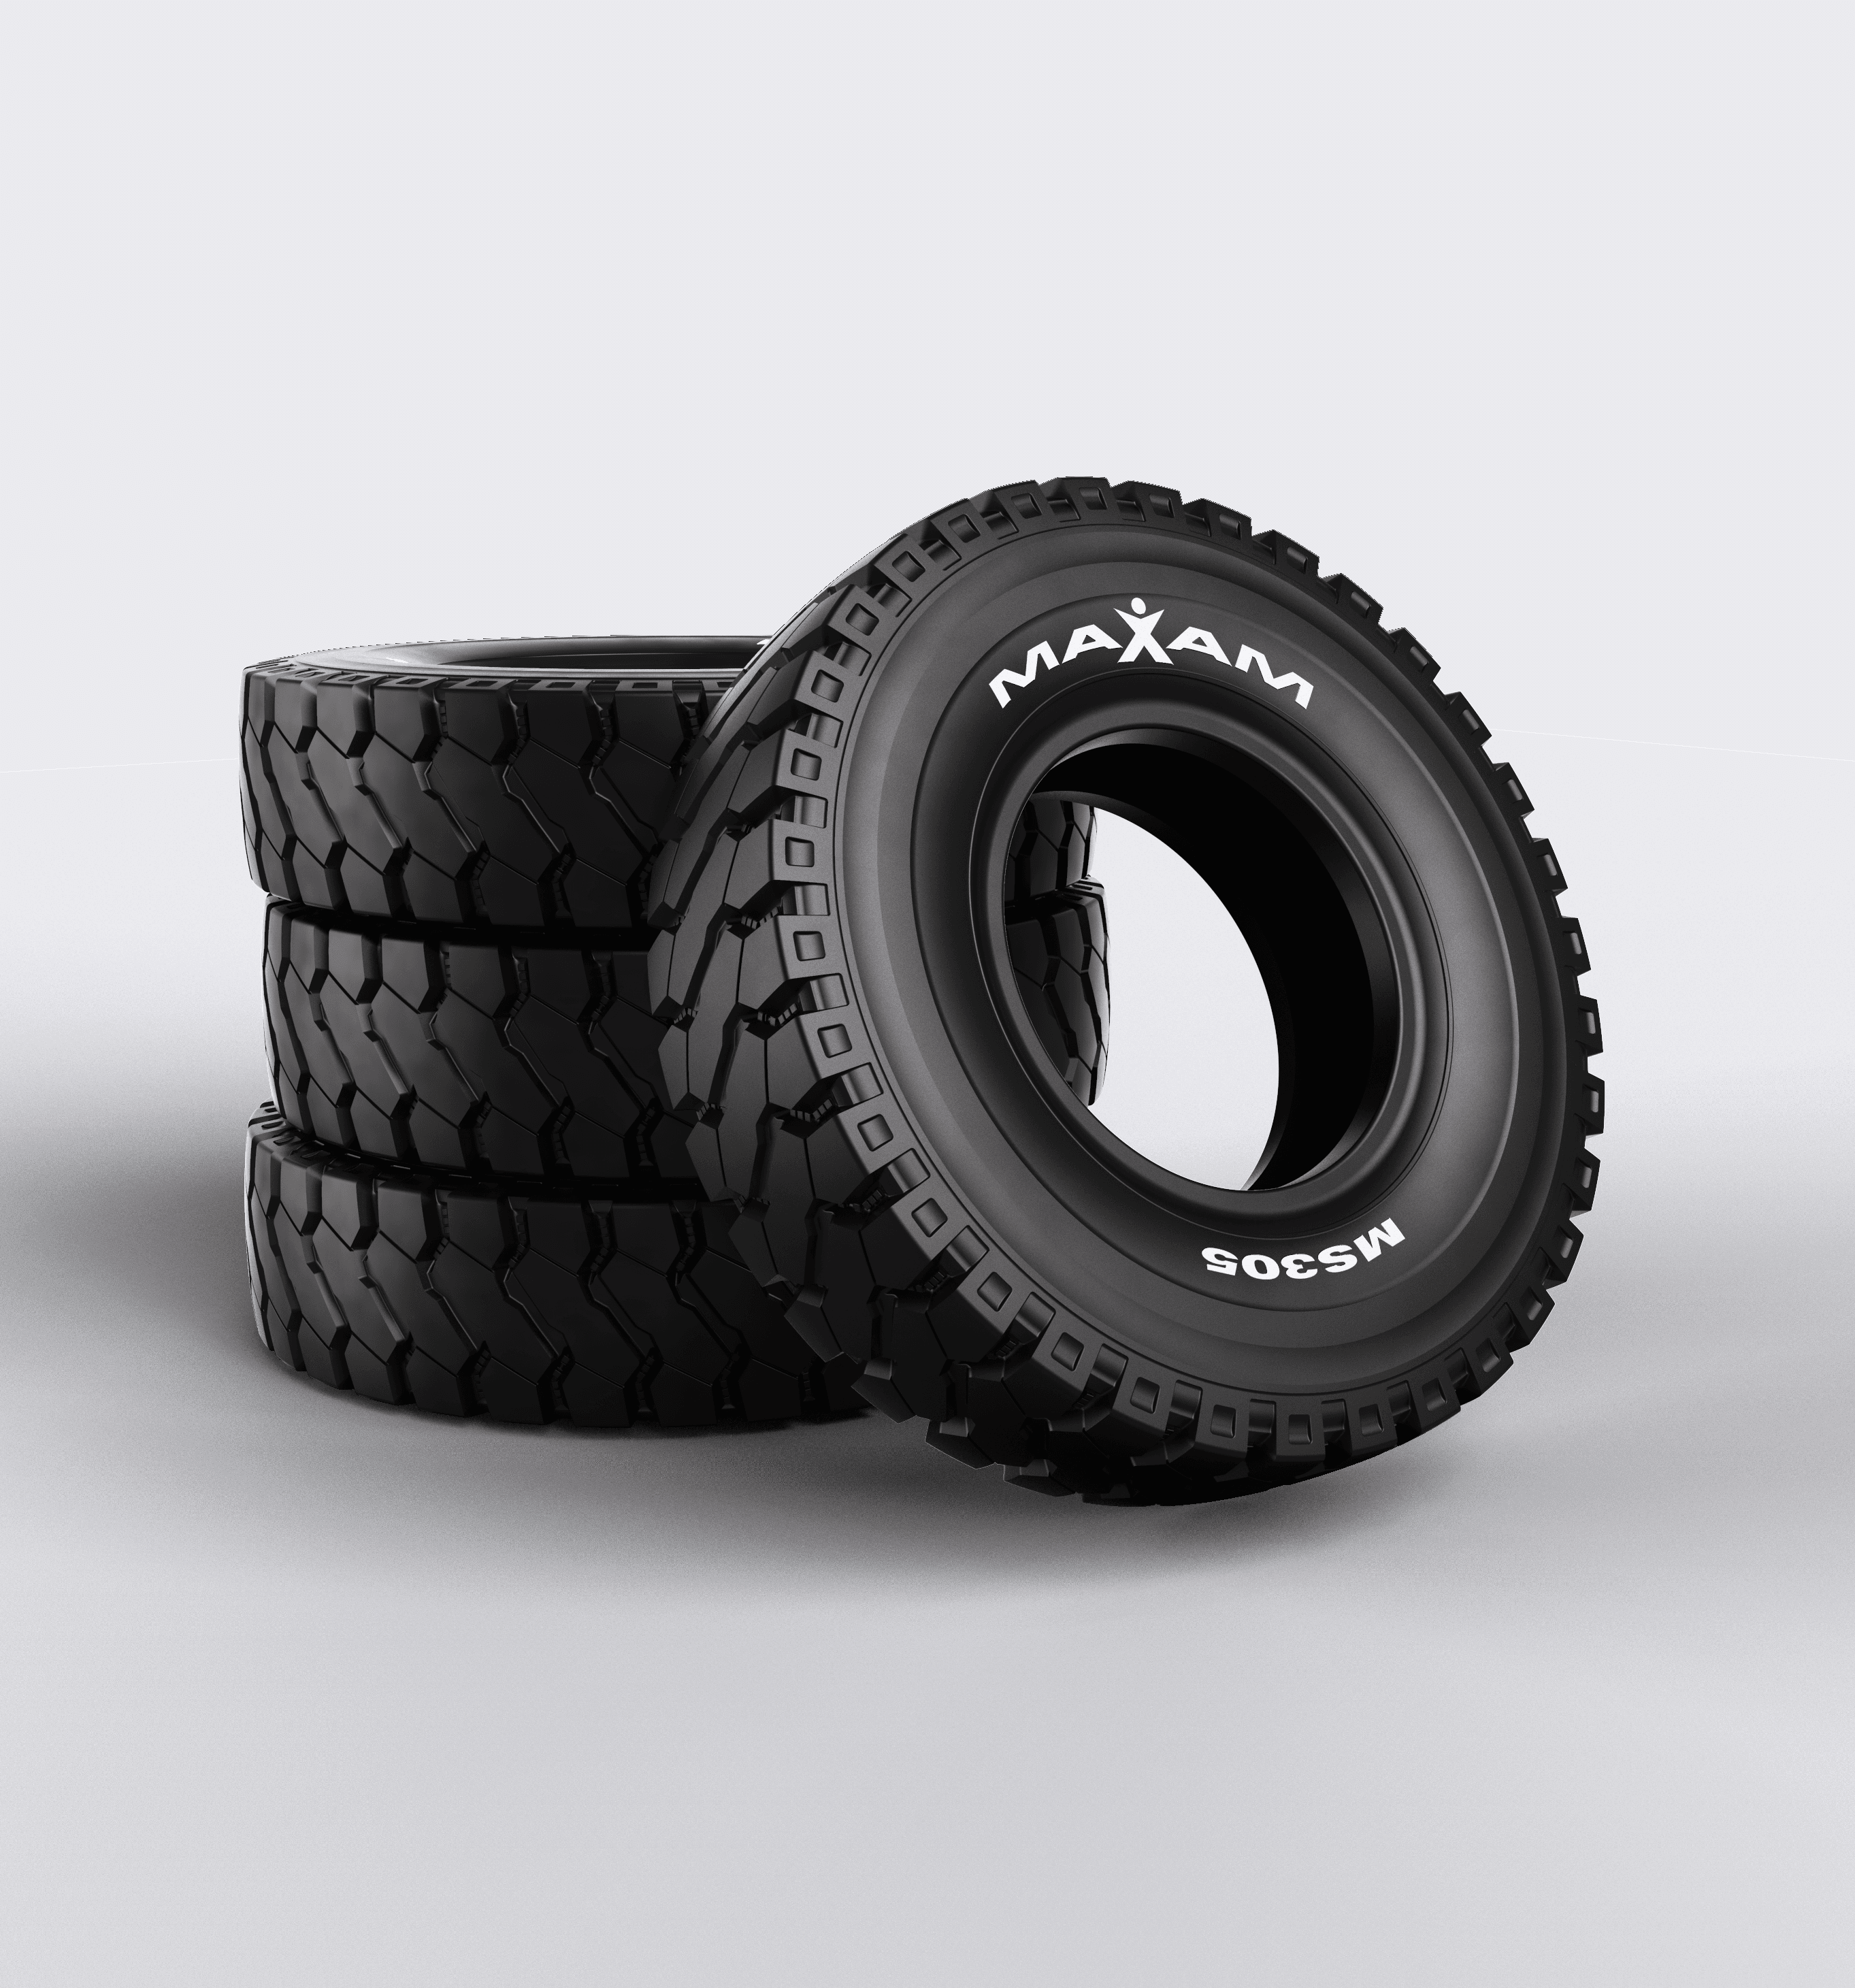 3D CAD Render by Sprout Studios of stacked Maxam tires